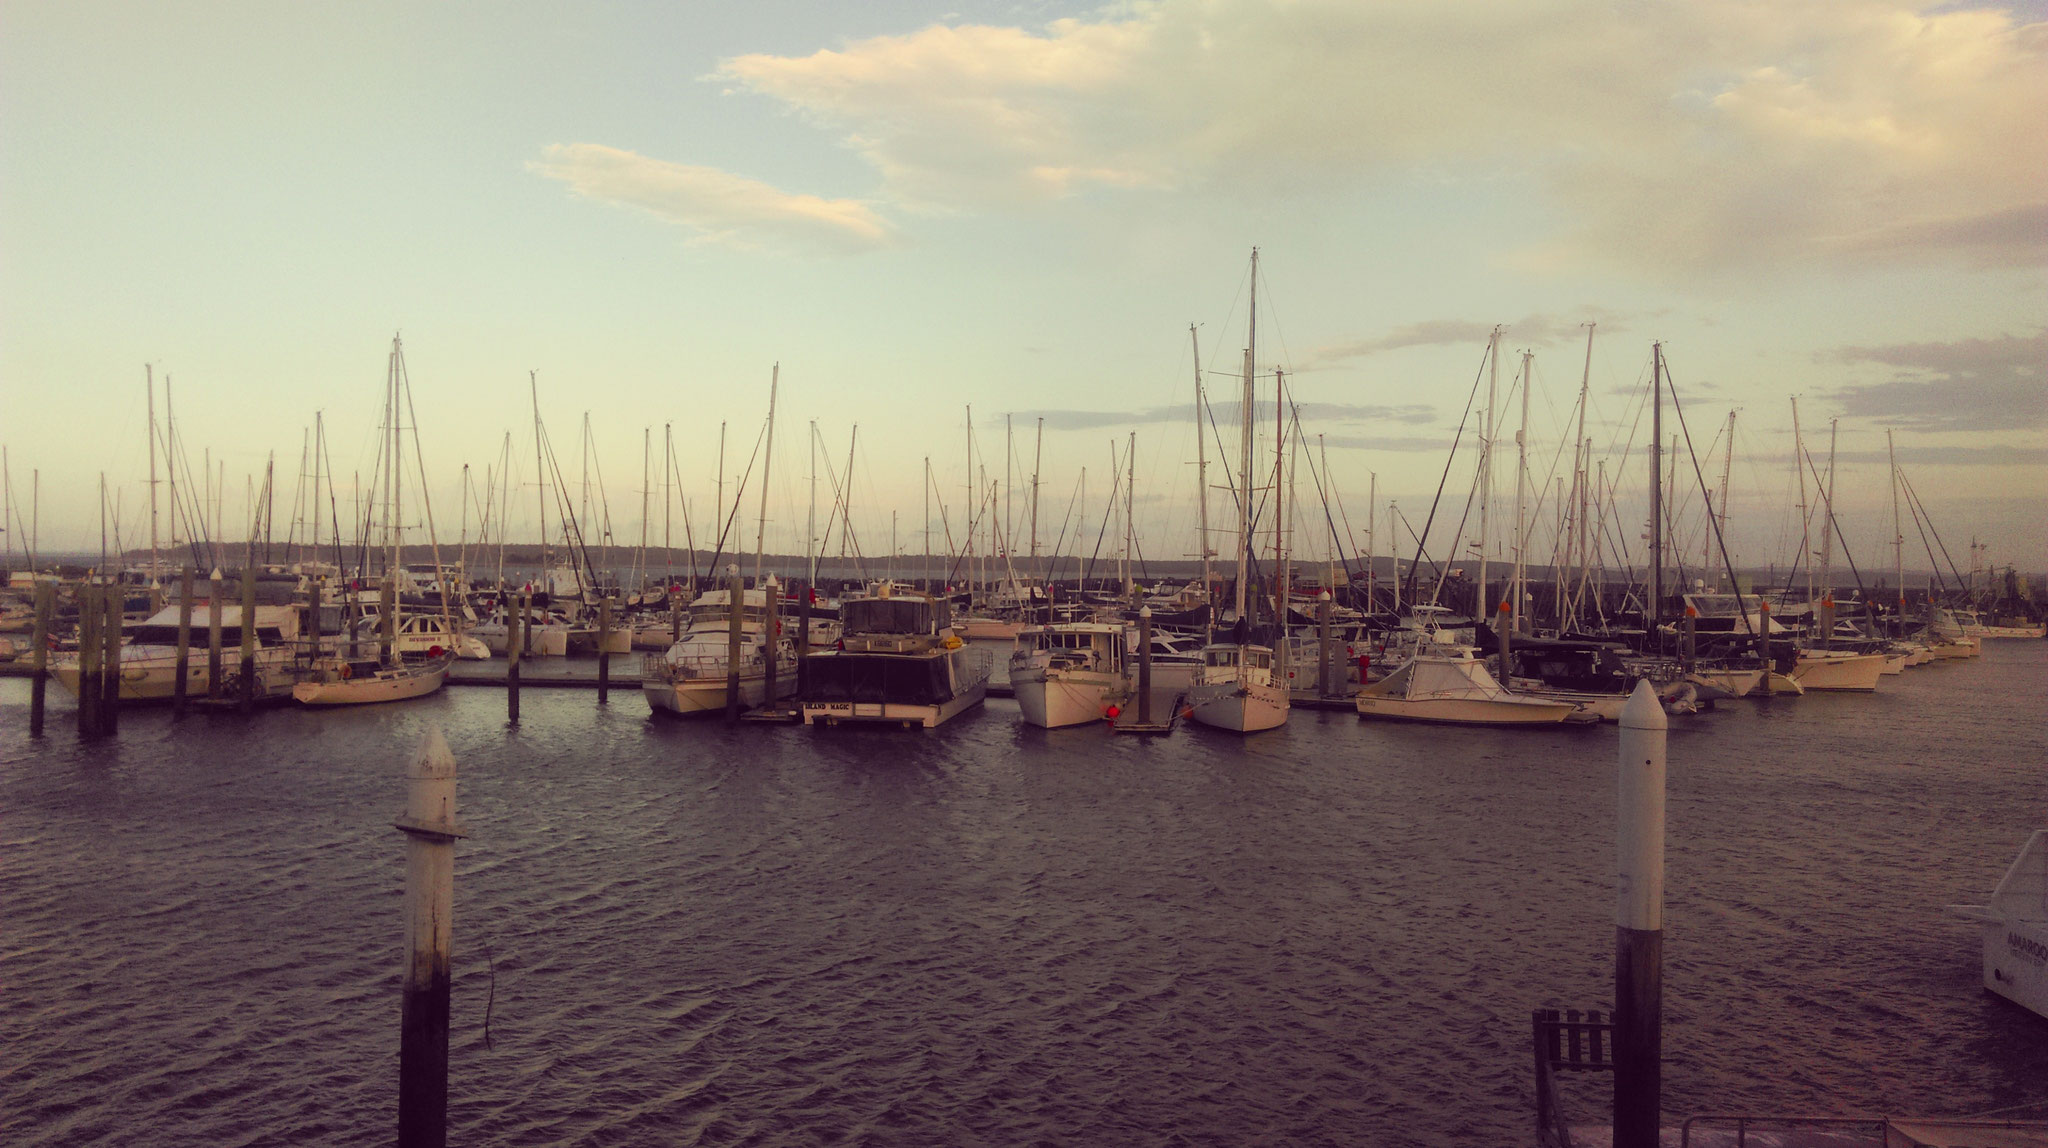 The Hervey Bay harbour at sunset before boarding the ferry to the island..